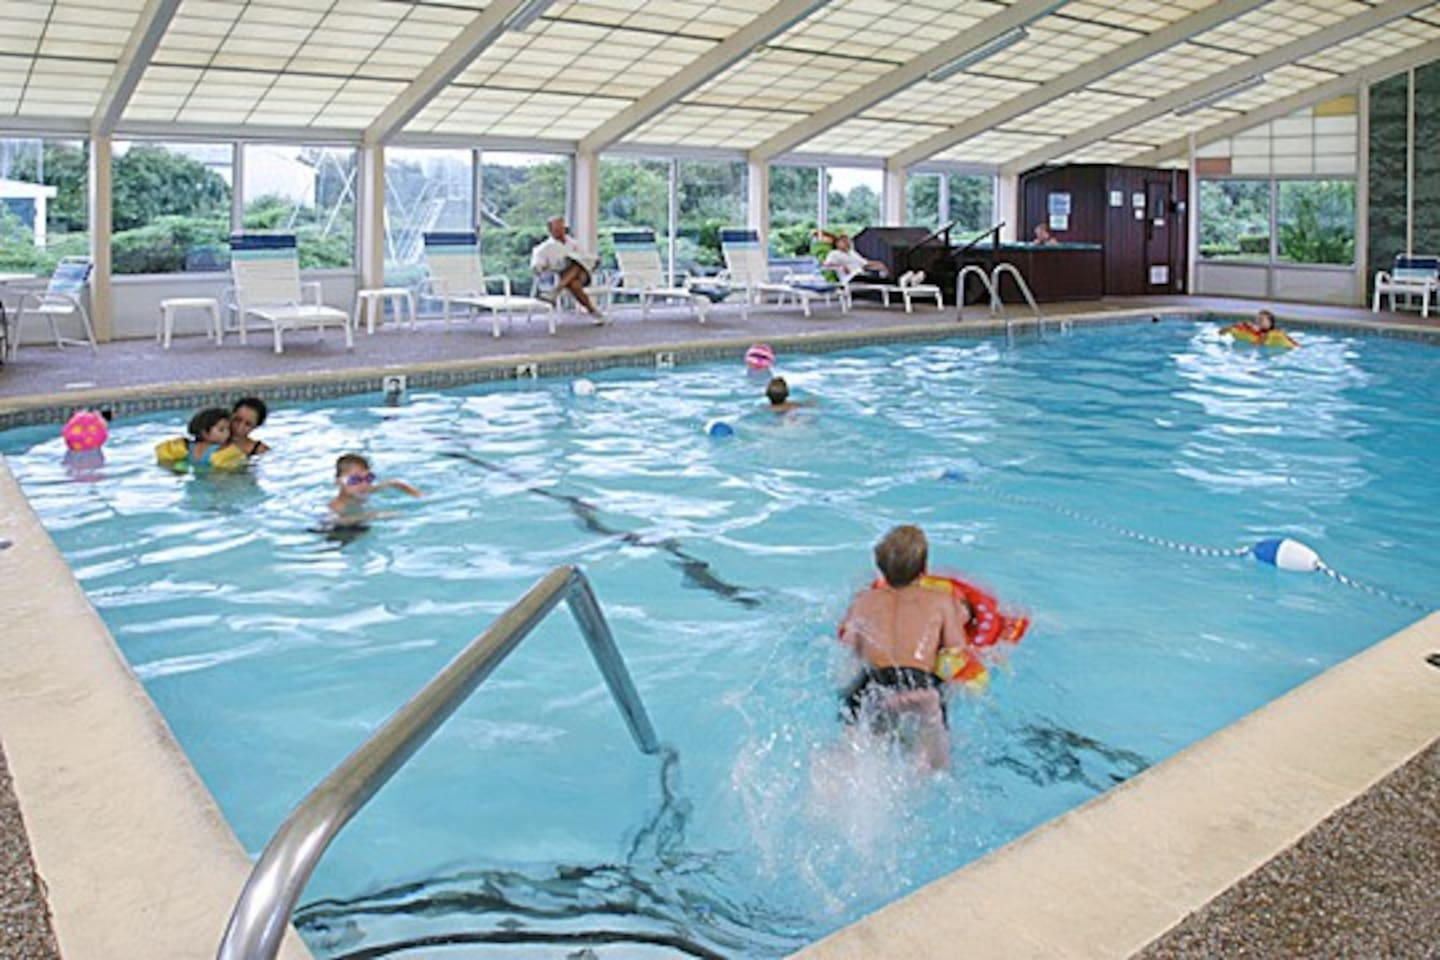 Enjoy our Indoor Pool when visiting Cape Cod